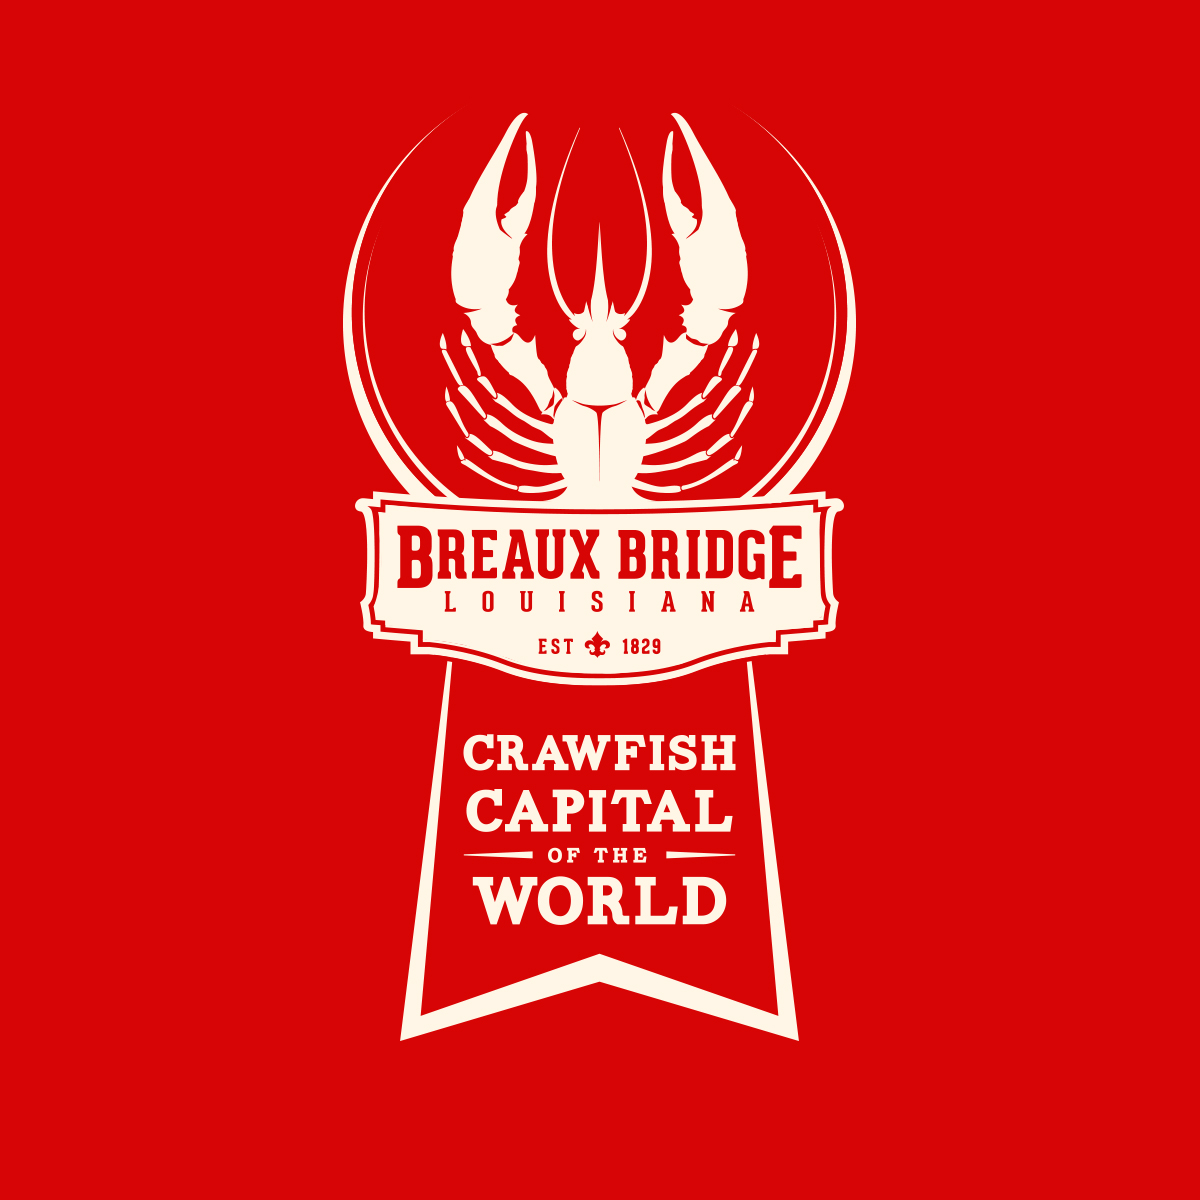 logo-design-city-of-breaux-bridge.jpg